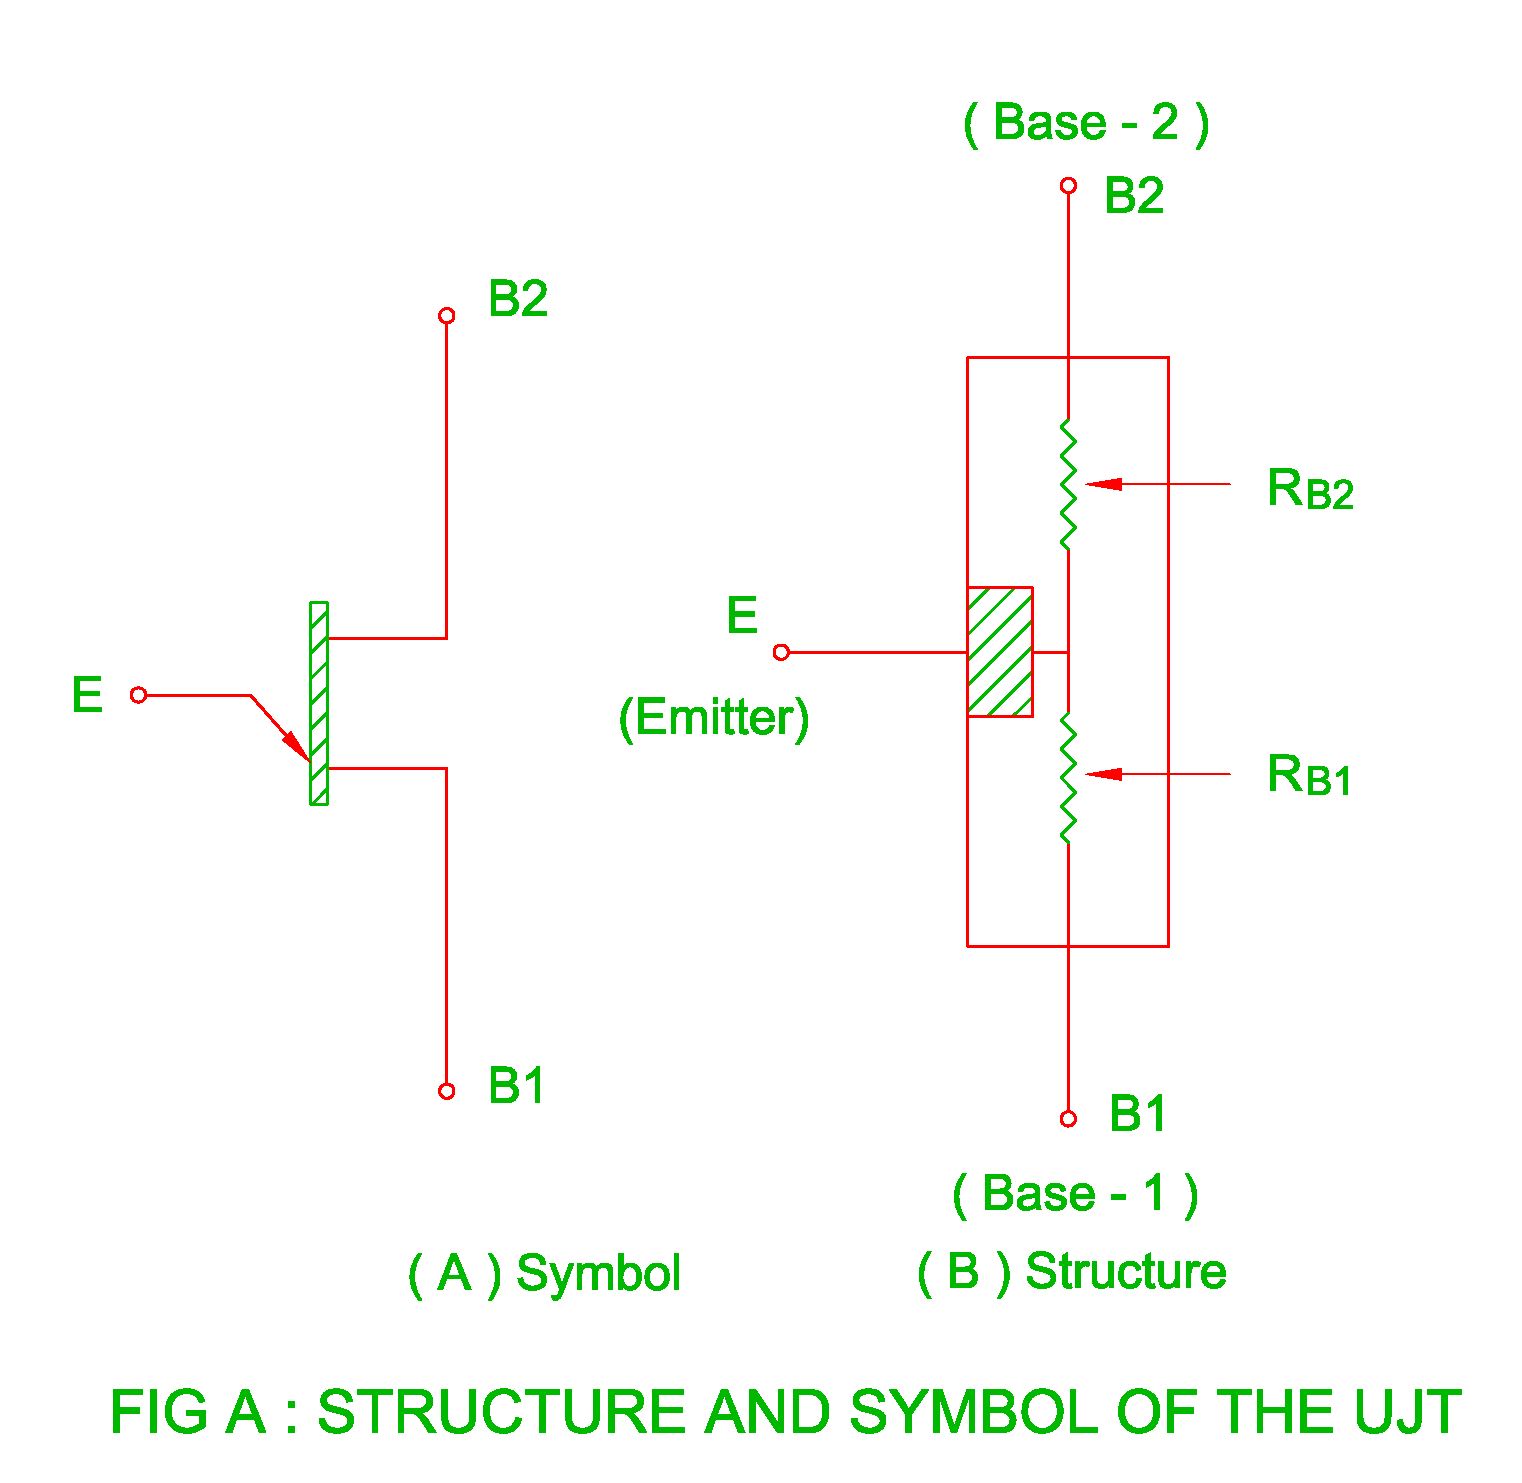 small resolution of it has three terminals base 1 b 1 base 2 b 2 and emitter the structure and symbol of the ujt is shown in the figure a